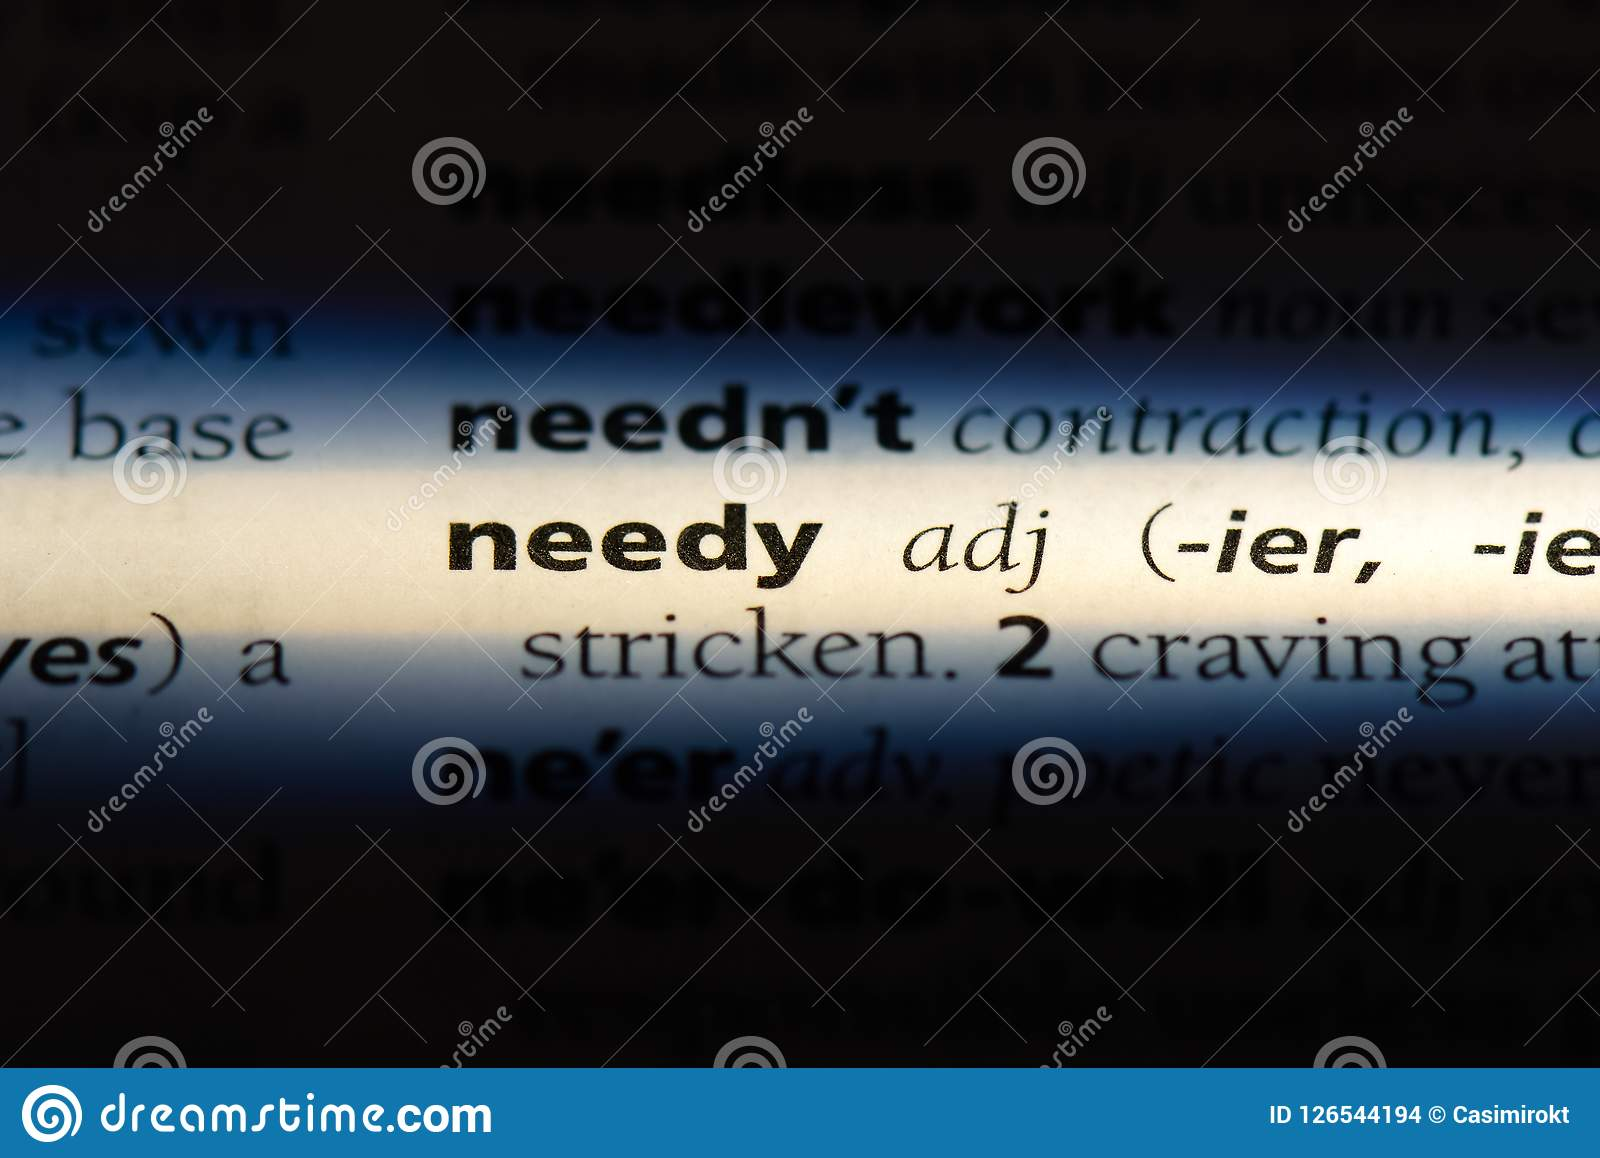 what is the definition of needy